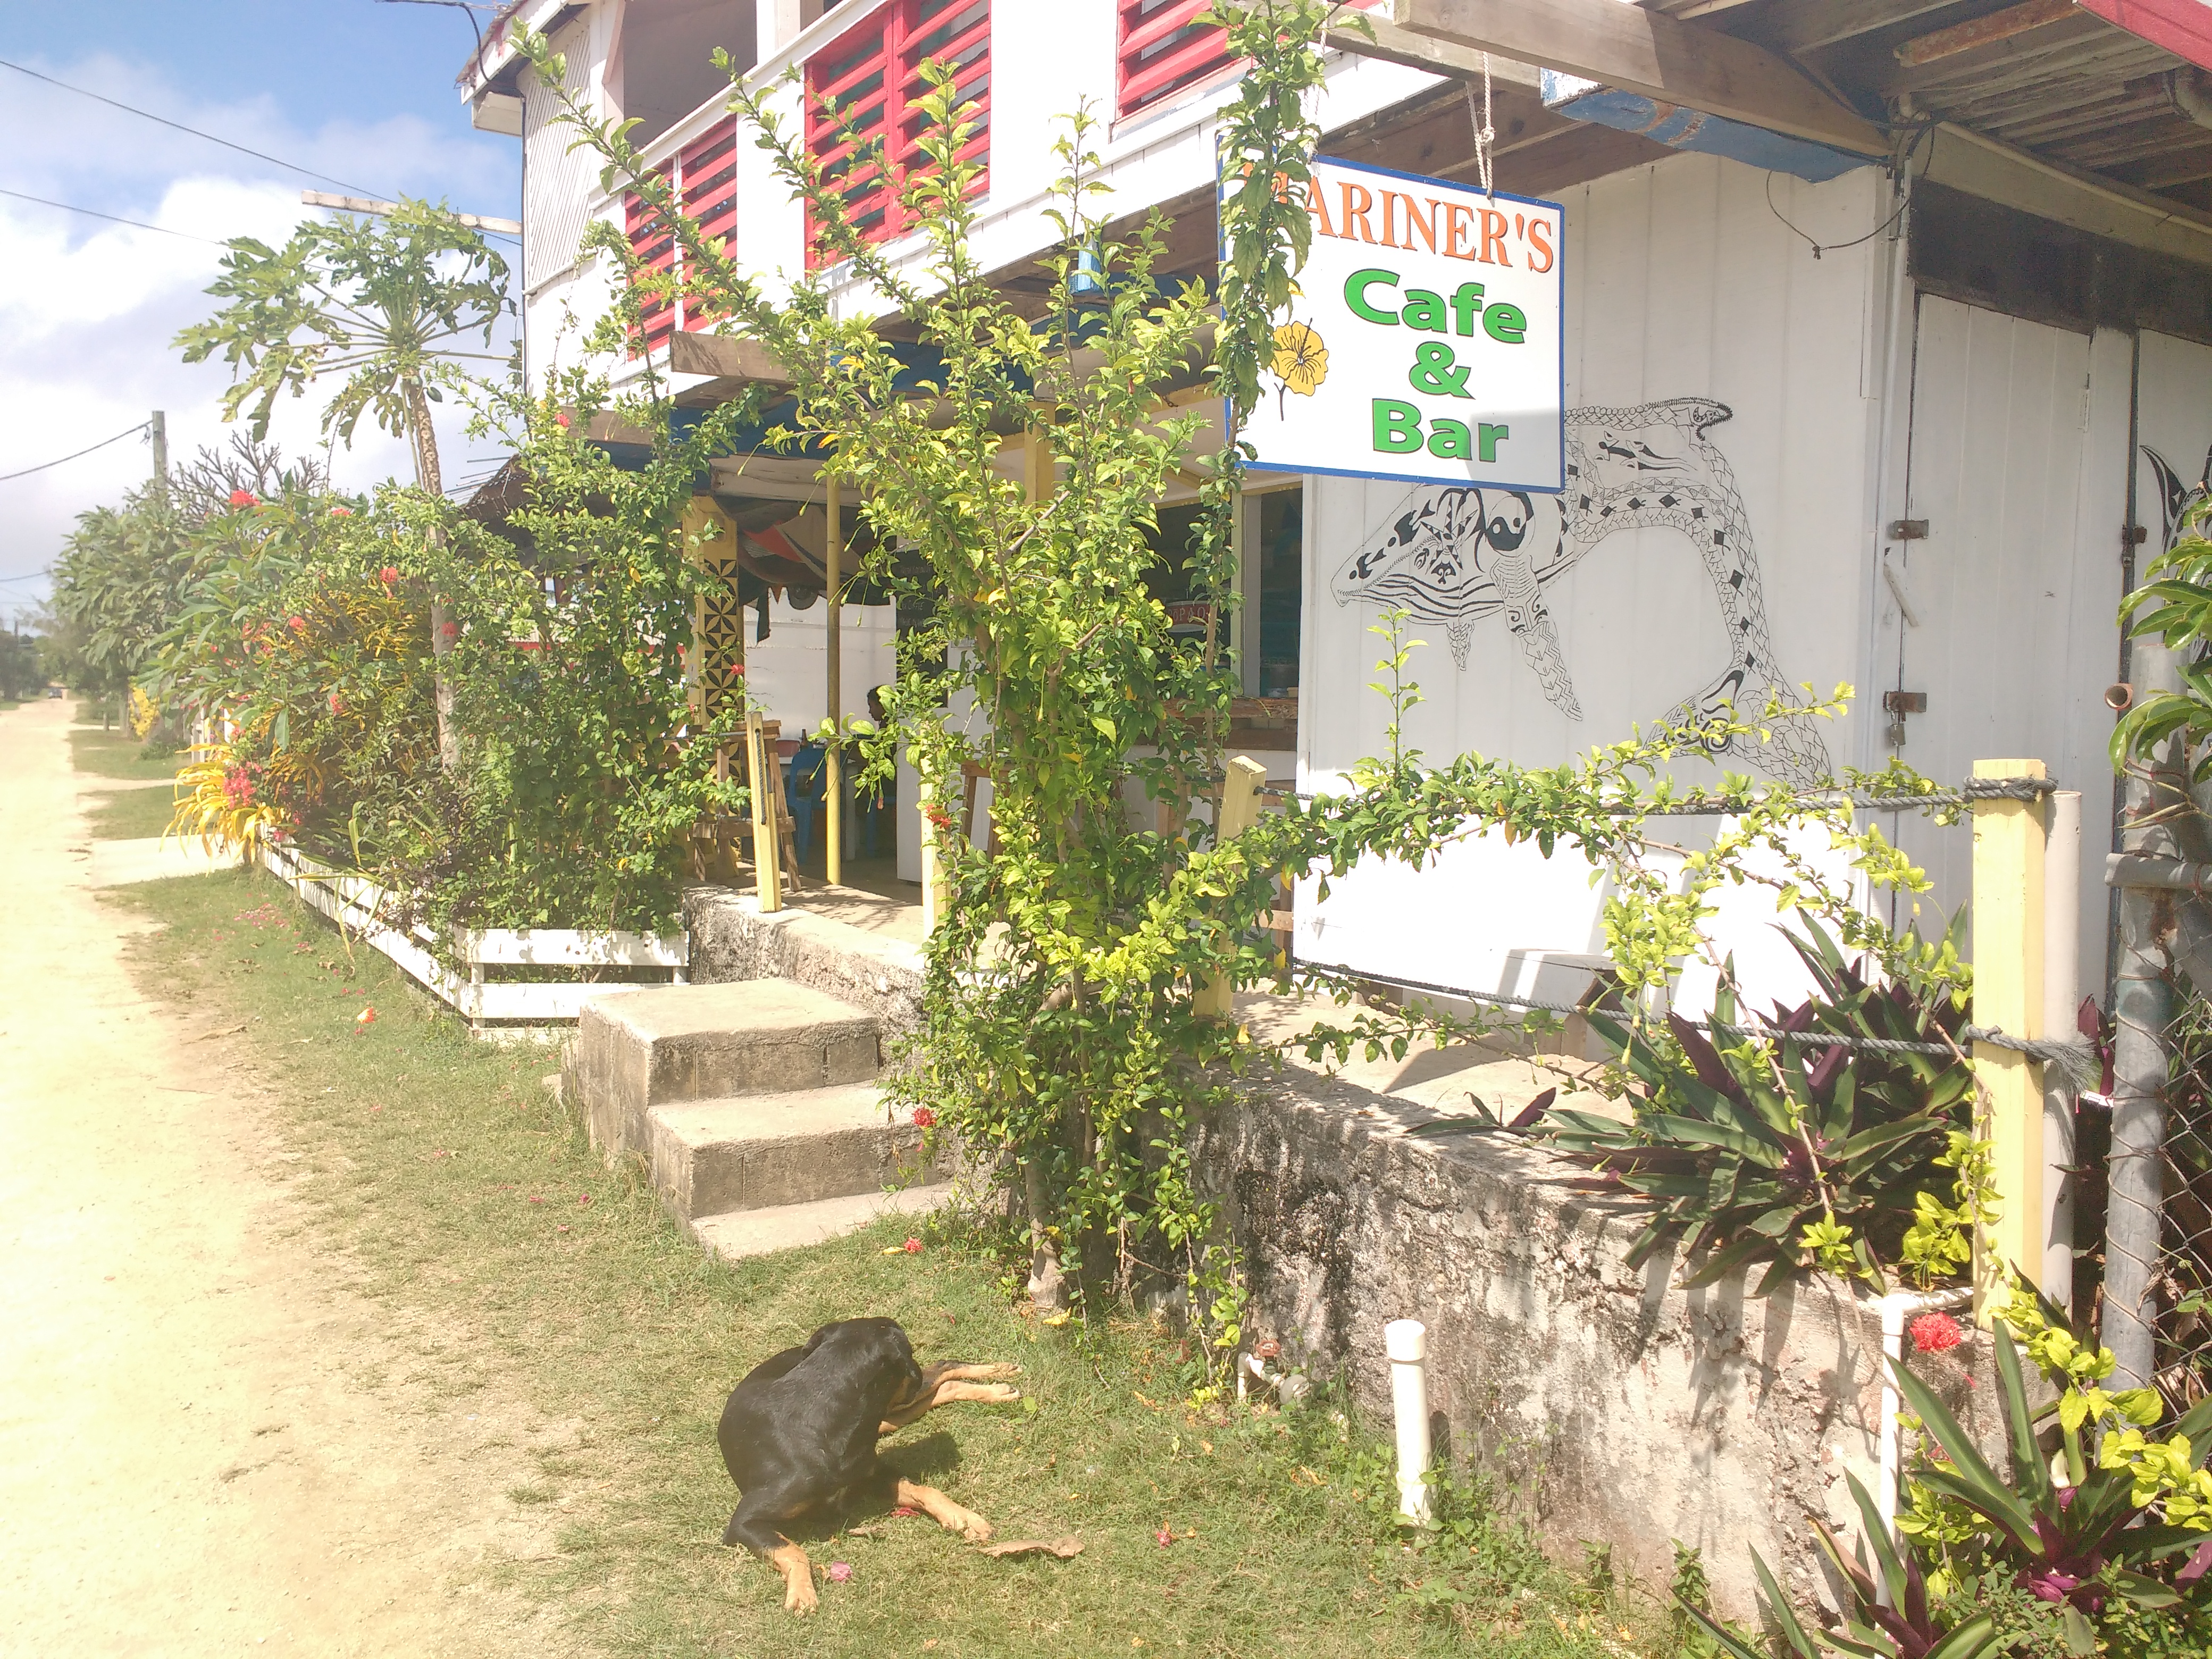 Mariner's Cafe and Bar Nuku'Alofa